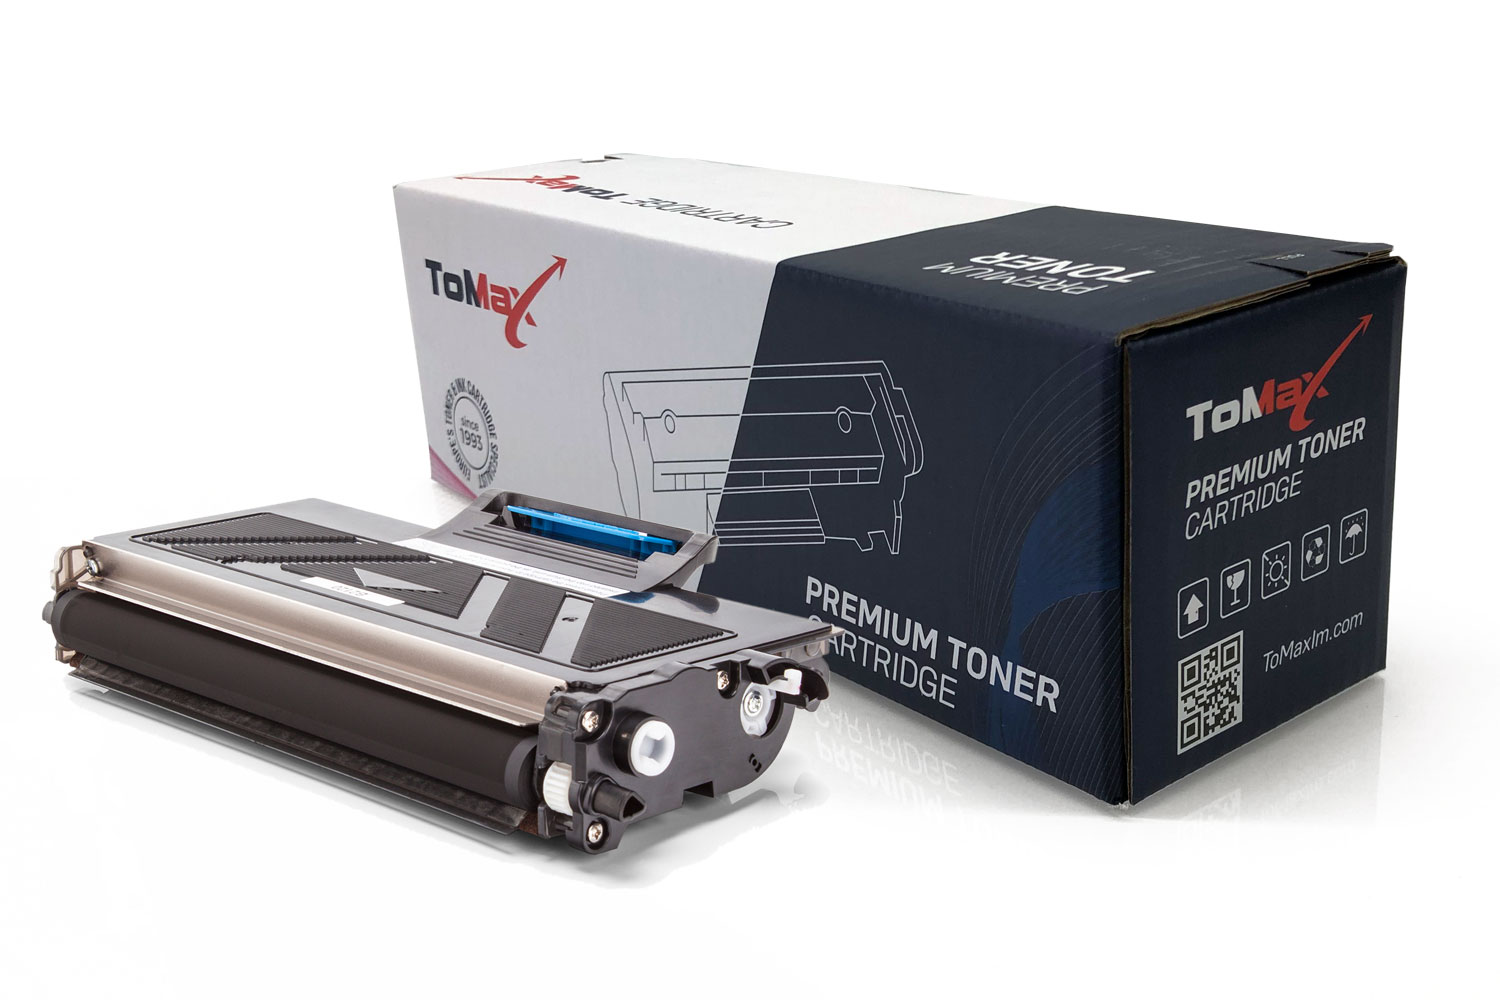 ToMax Premium Toner Cartridge replaces HP CC532A / 304A Yellow